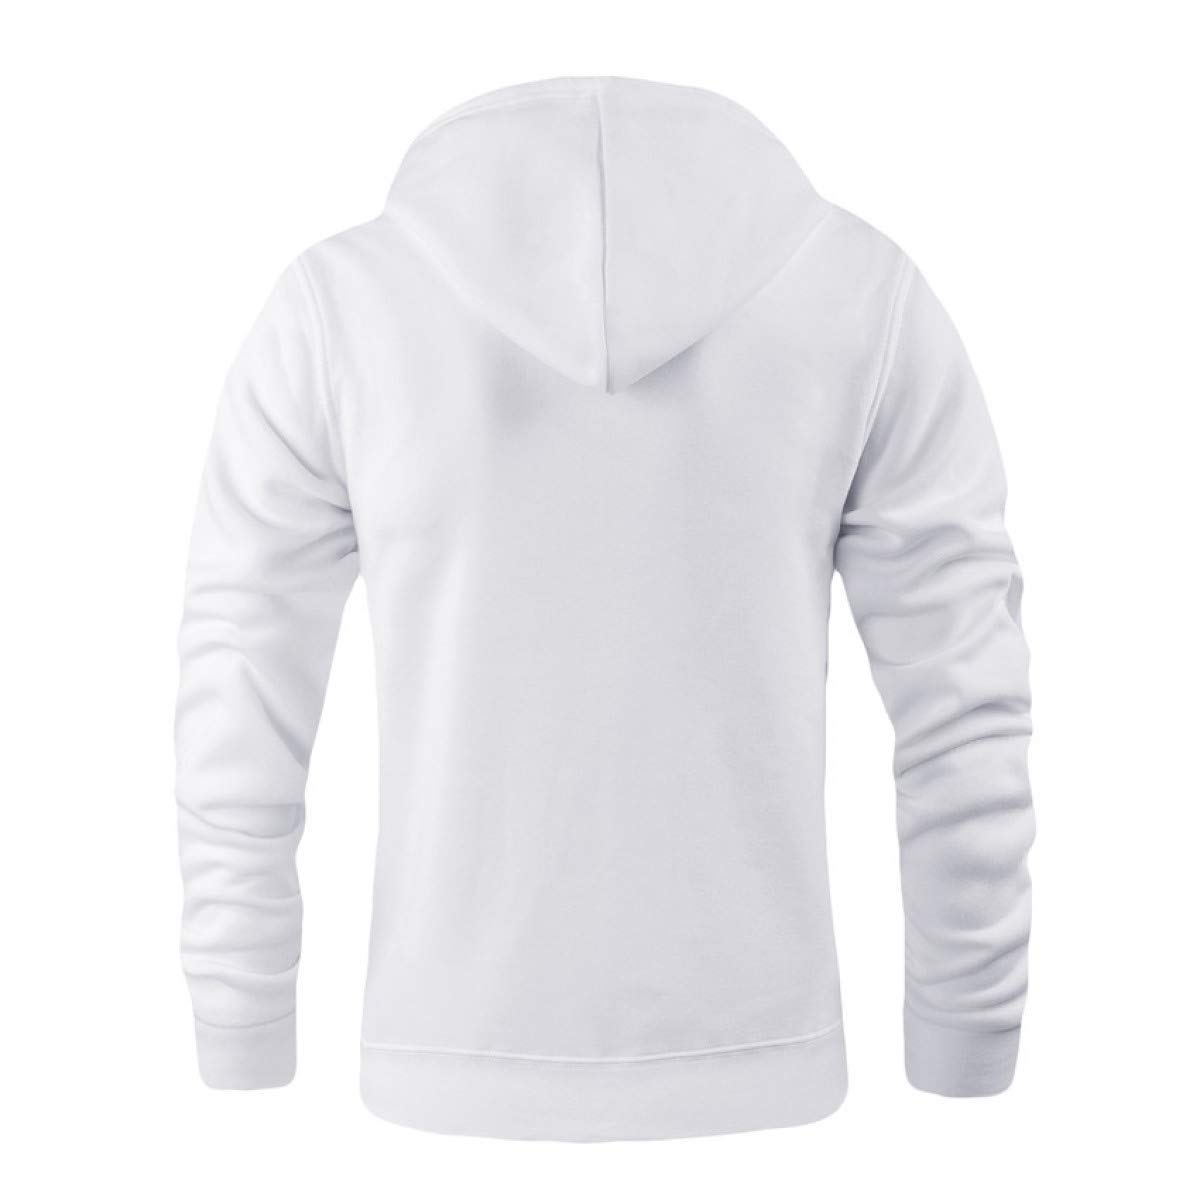 WEEKEND SHOP Mens Hoodies Sweatshirt Men Hip Hop Fleece Hoody Slim Sportswear at Amazon Mens Clothing store: